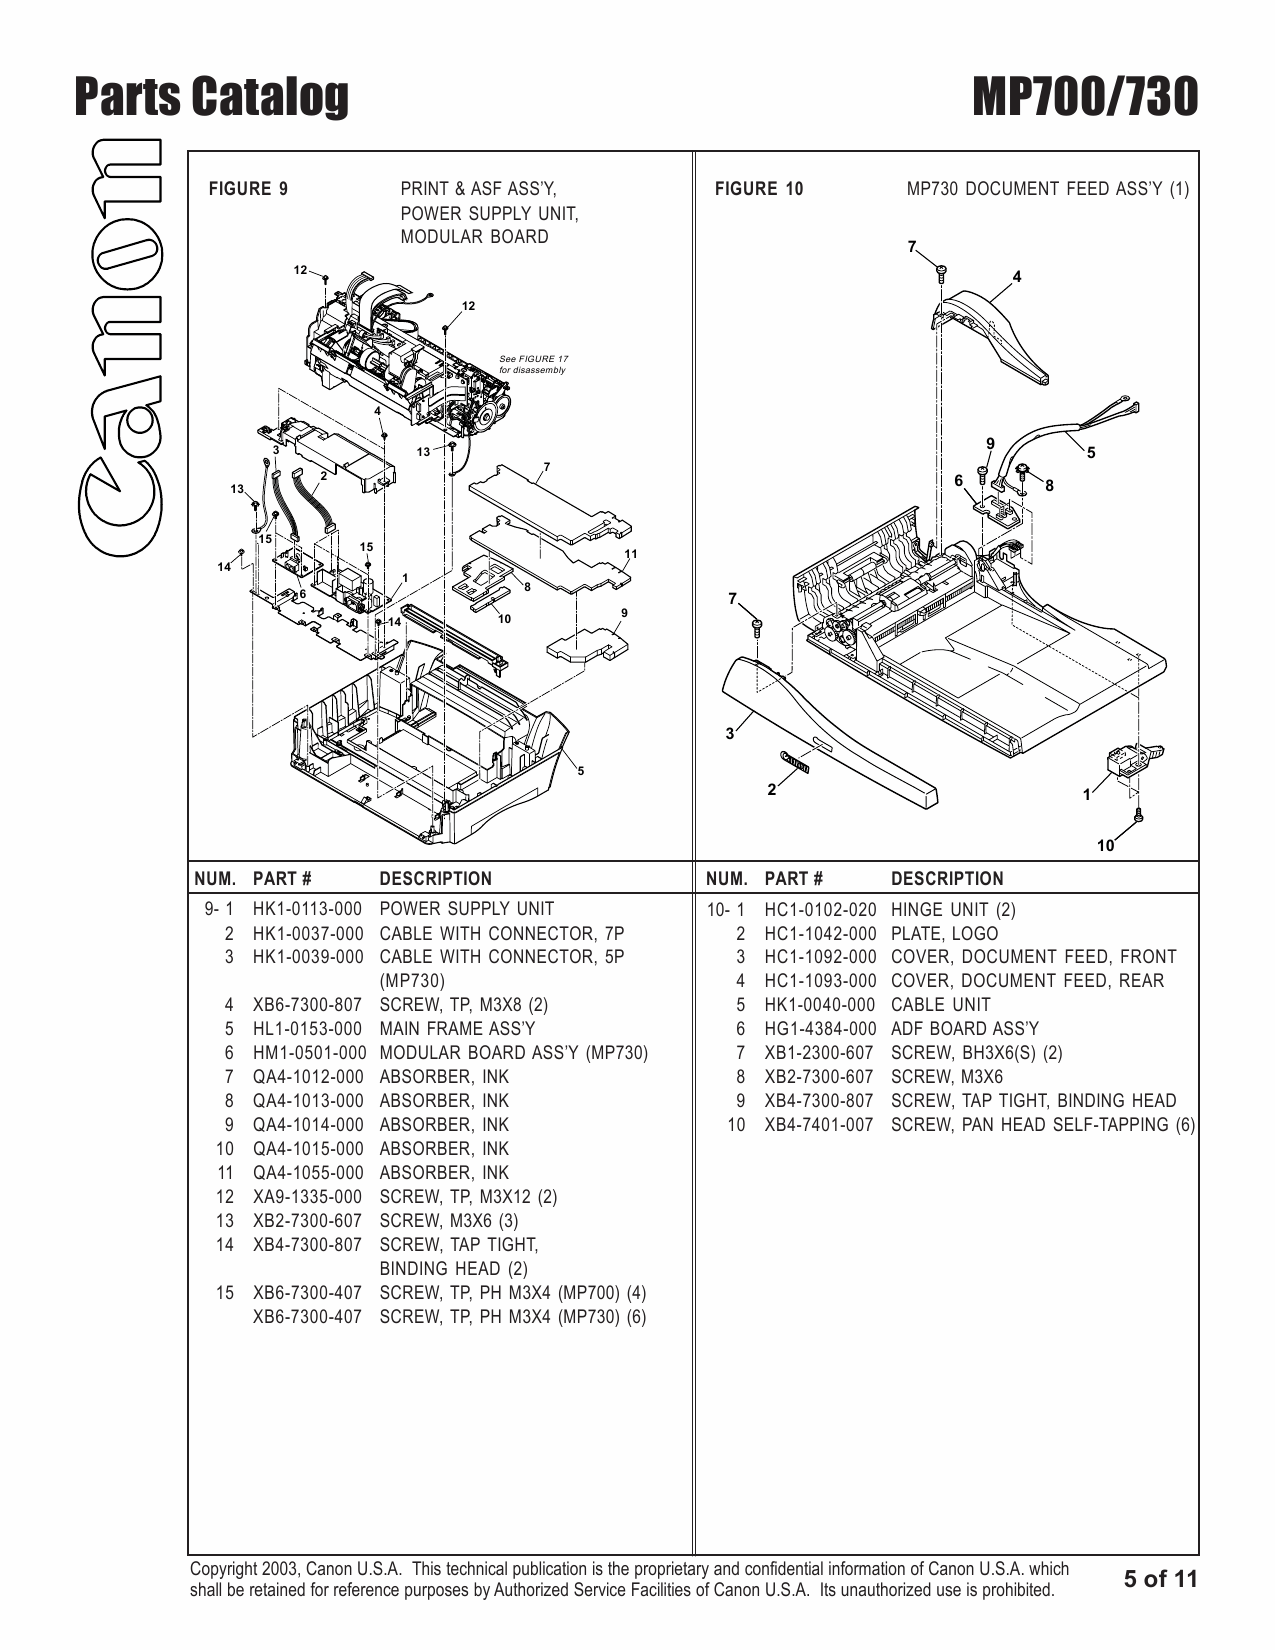 Canon PIXMA MP700 MP730 Parts Catalog Manual-6